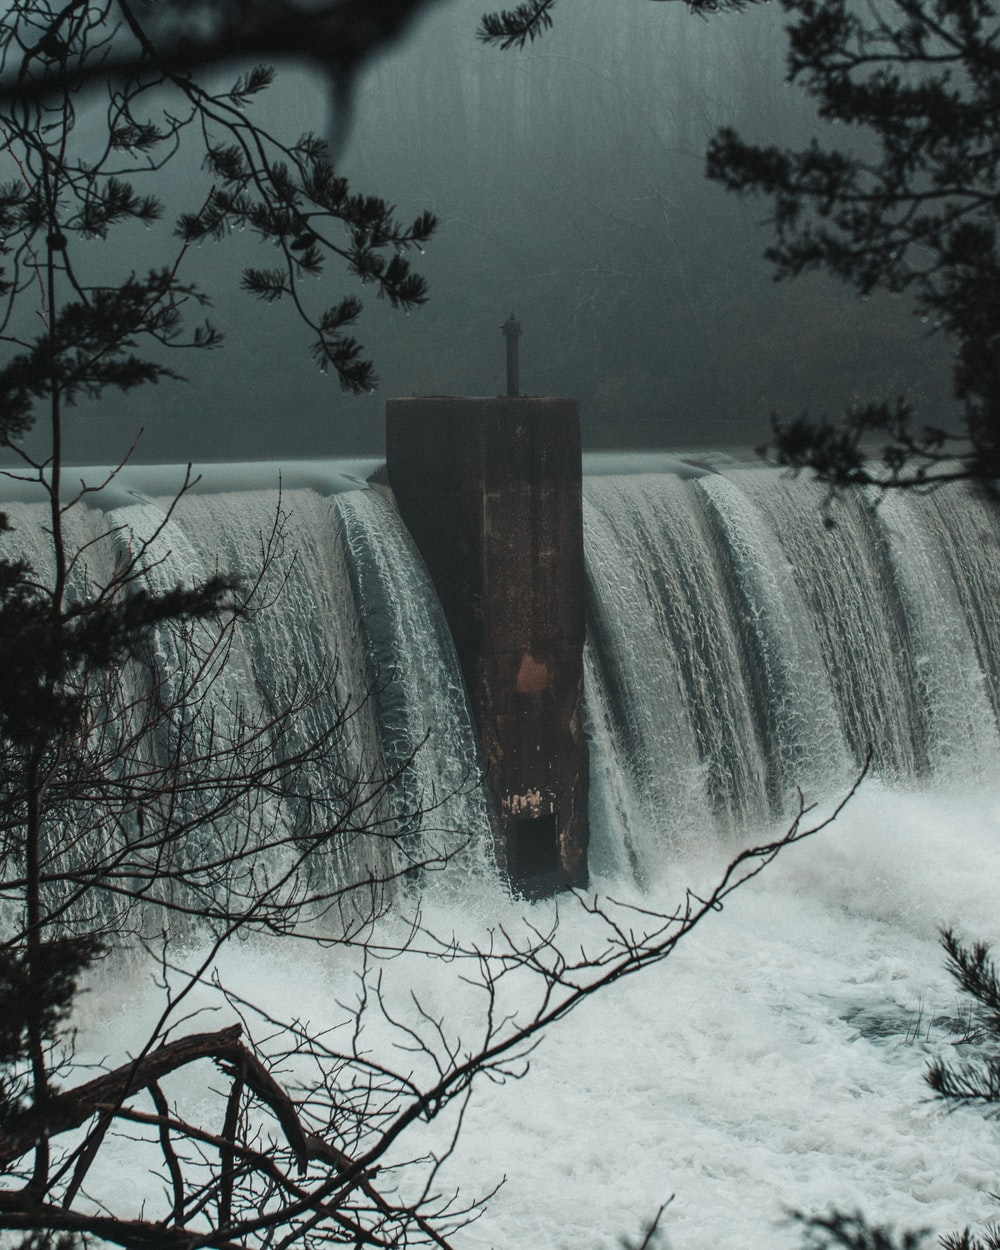 water dam view from trees